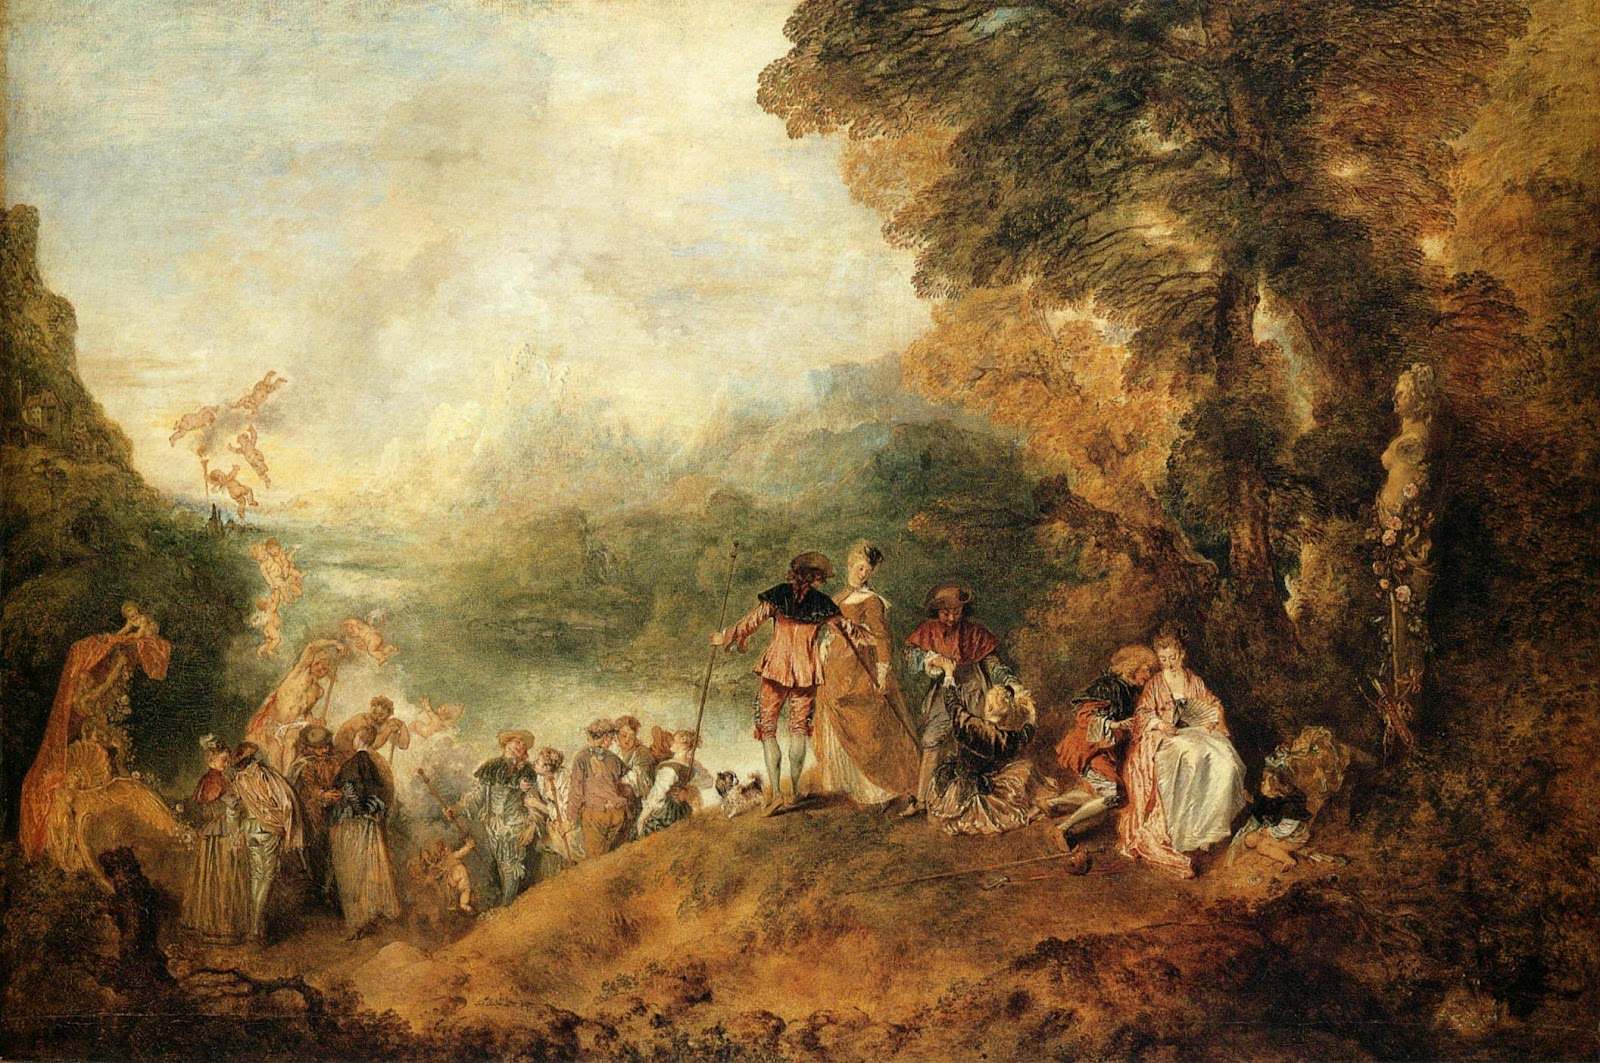 Kenney Mencher: Discussion and Video: French Baroque and Rococo Art